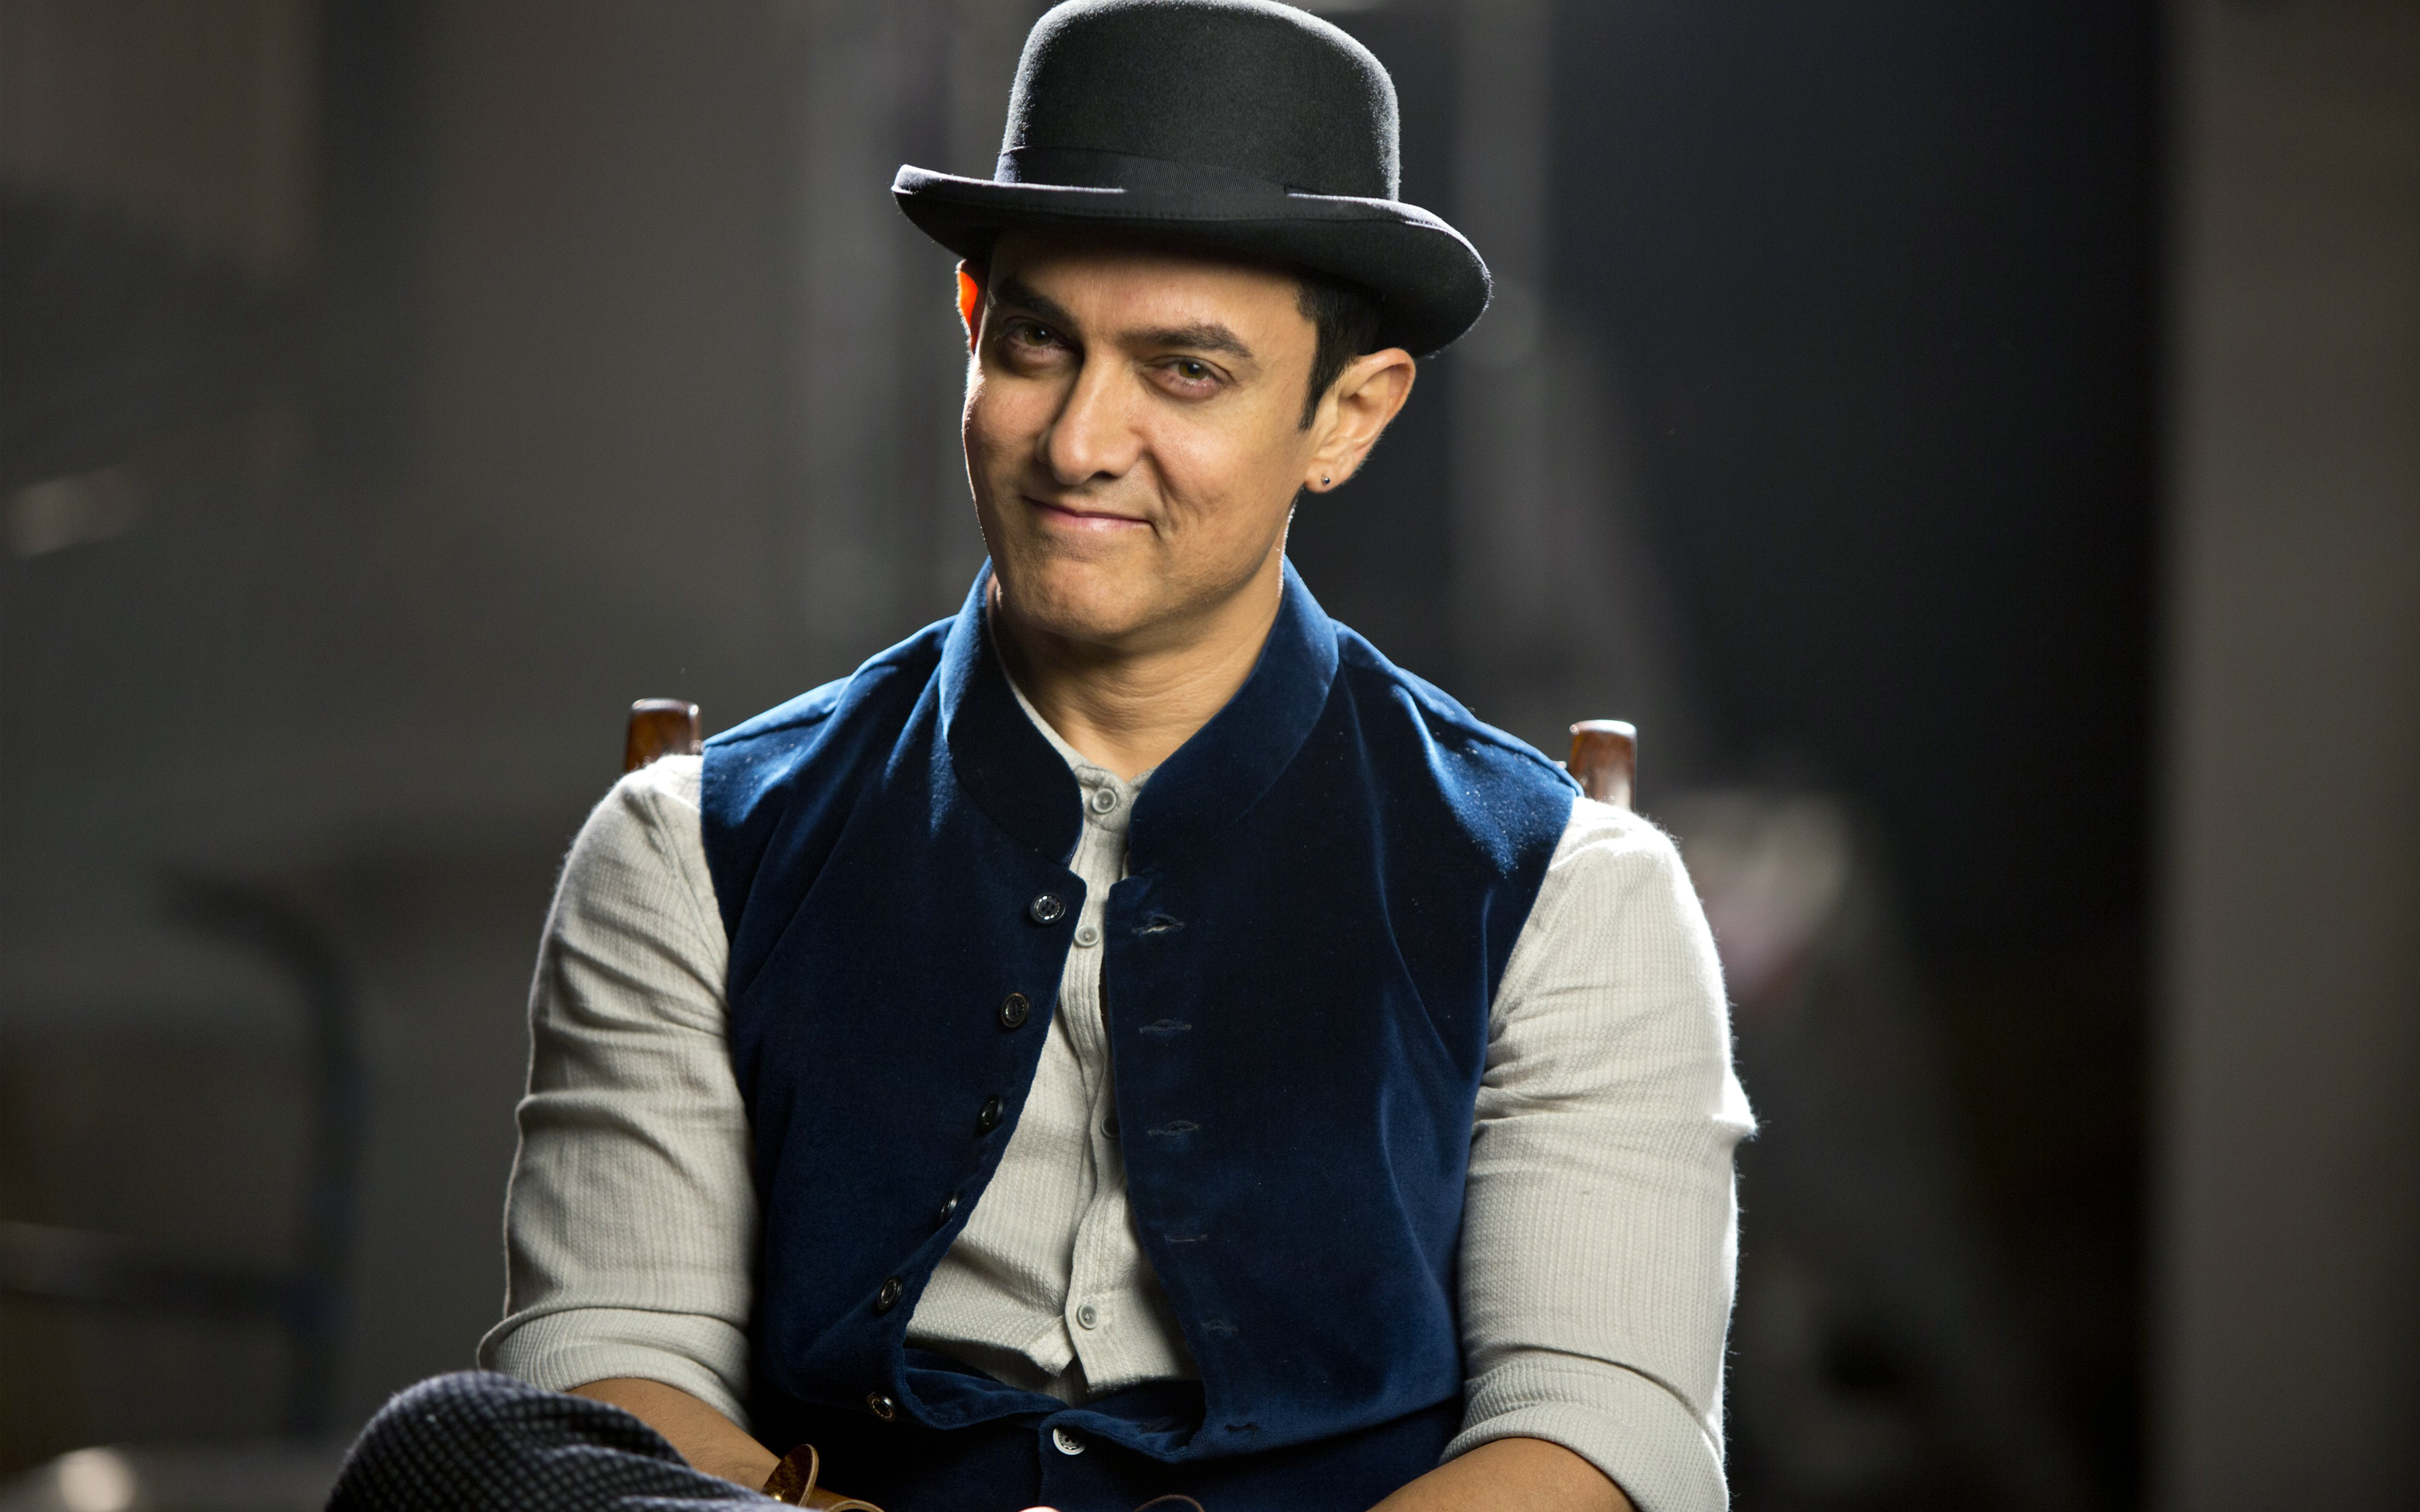 Aamir Khan to announce 'Mahabharata' at Facebook on this day?